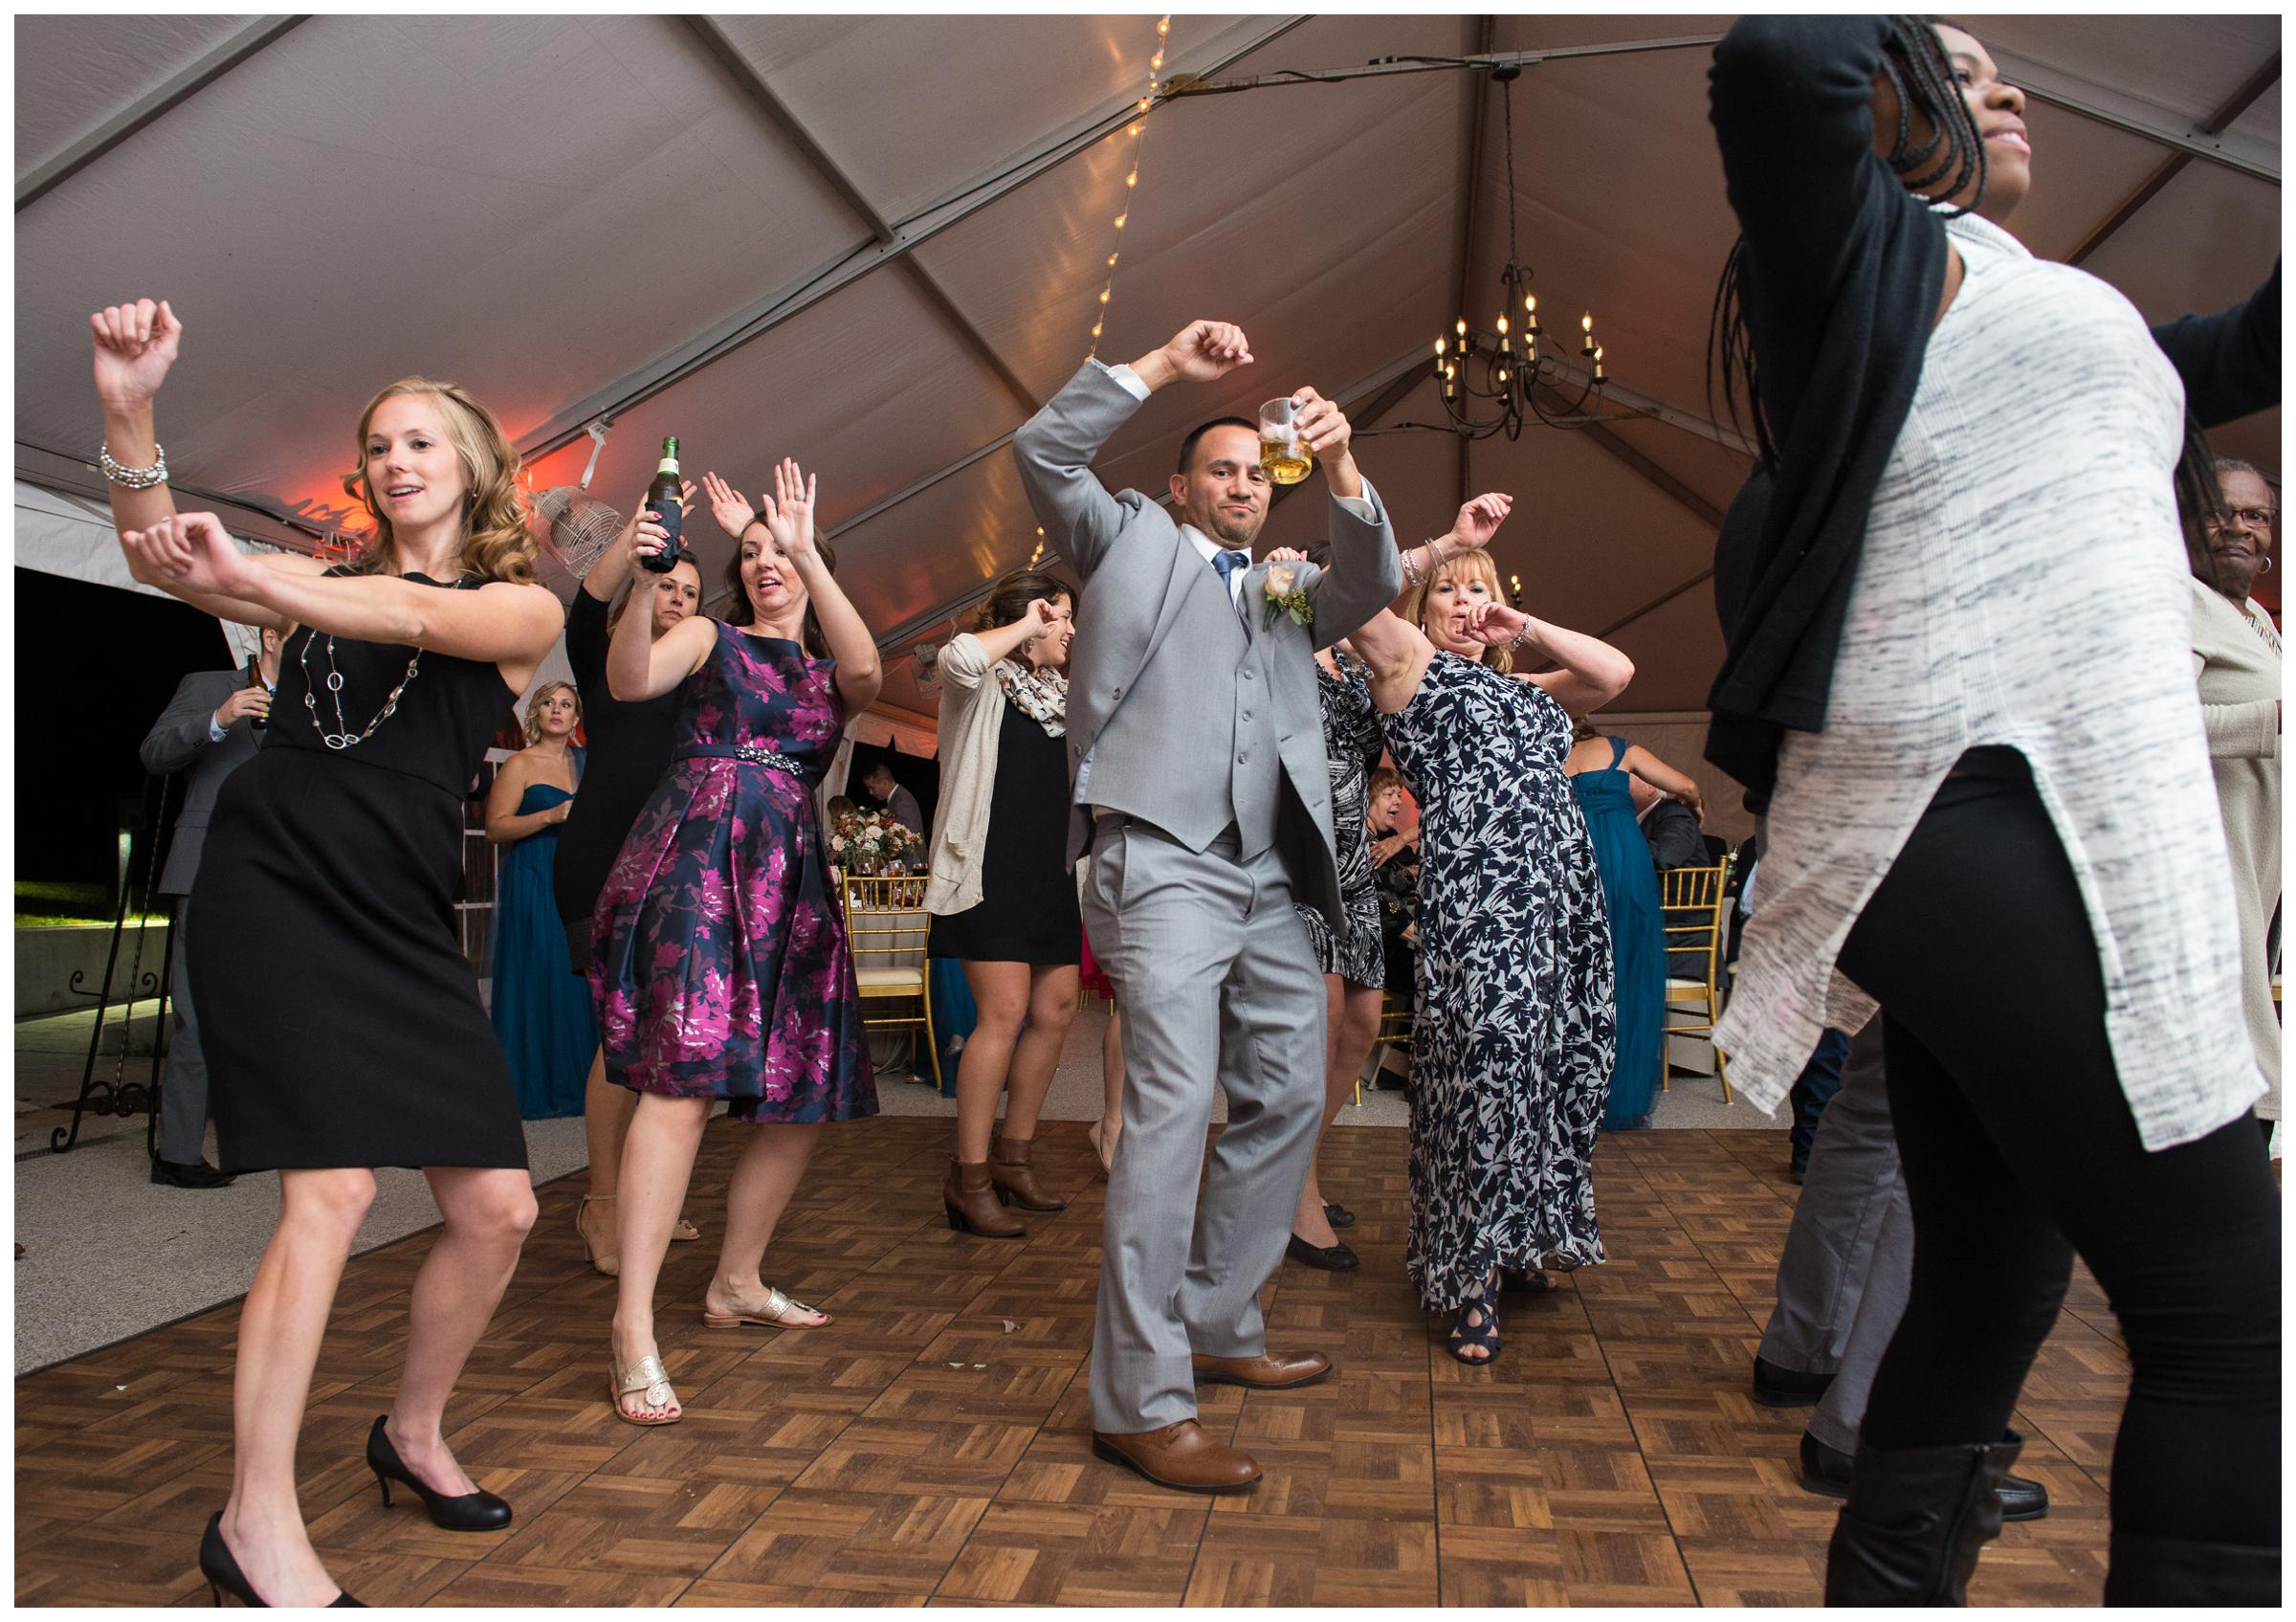 guests dancing during wedding reception at Rust Manor in Leesburg, Virginia